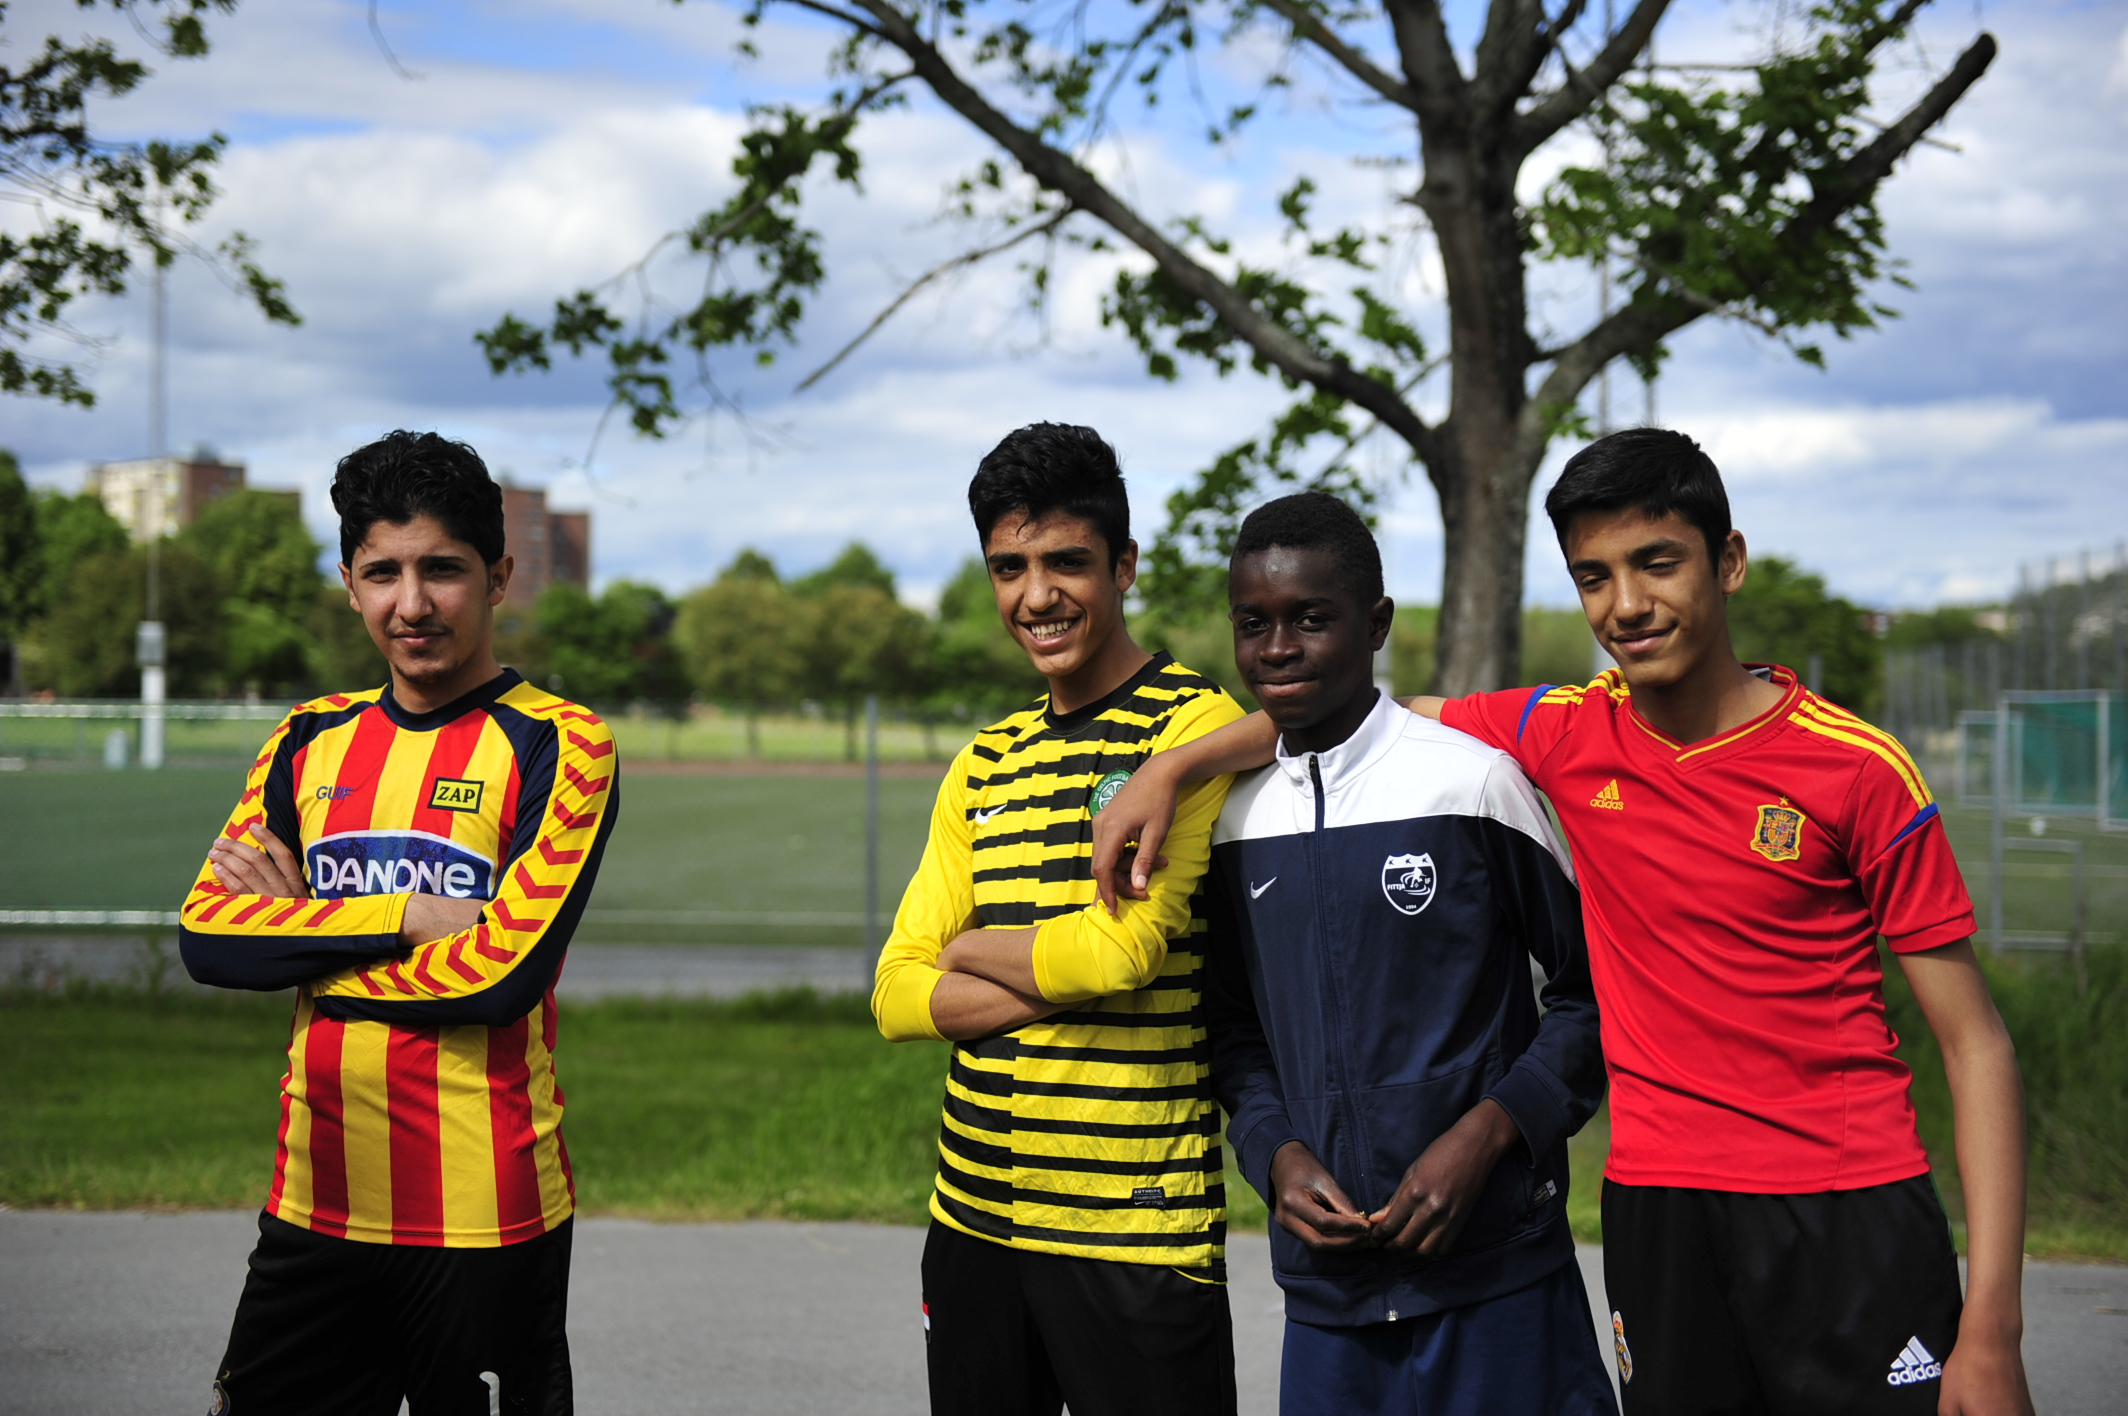 ACTIVE CREATIVE TALENT